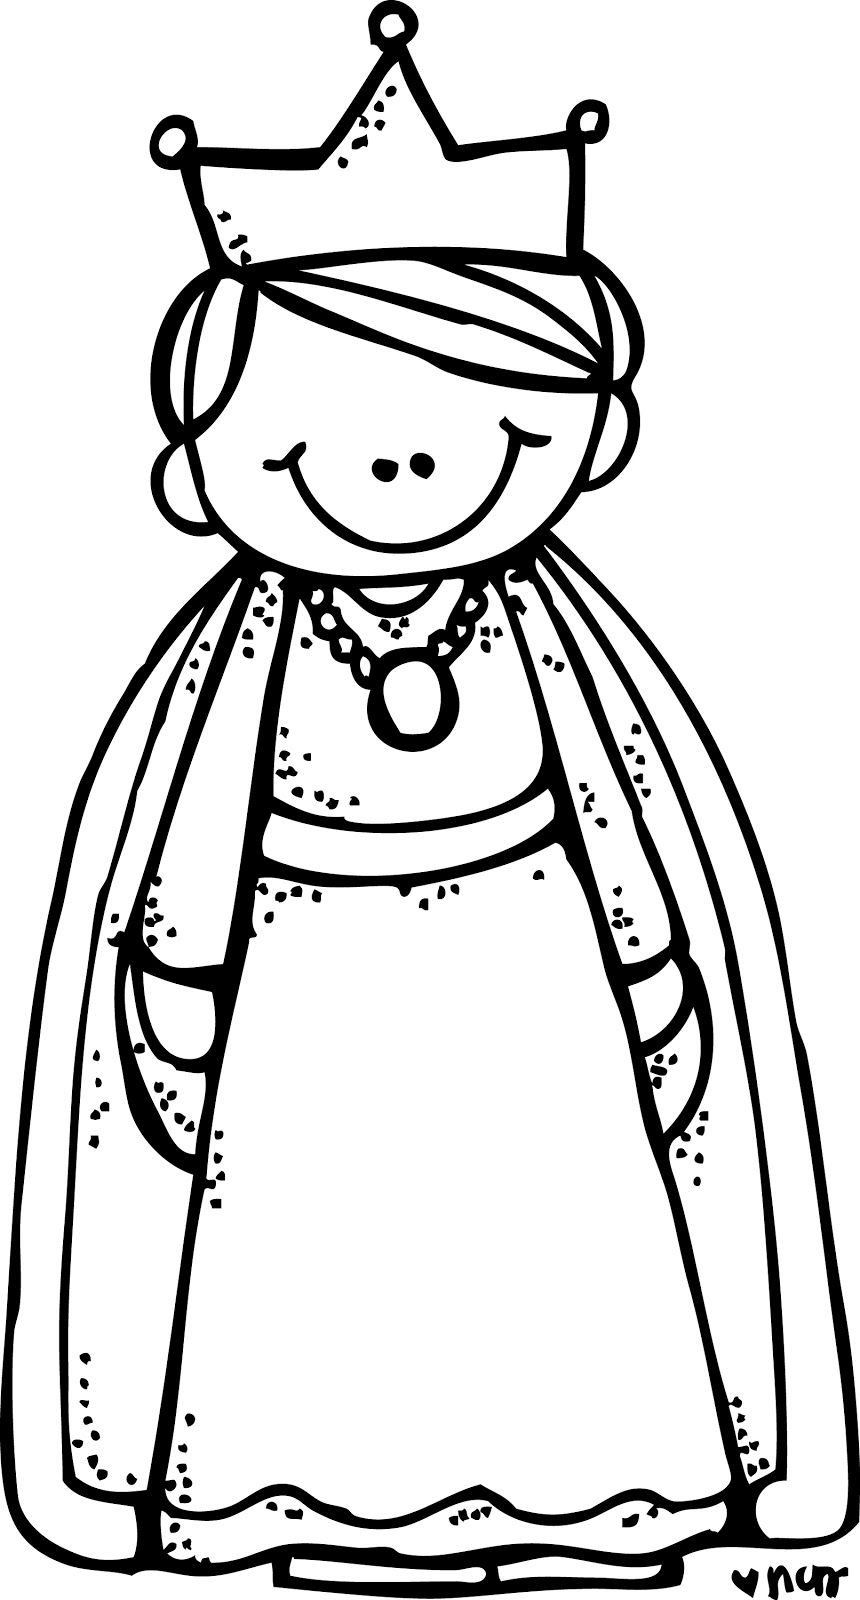 Queen clipart coloring book. Pin by caroline farret